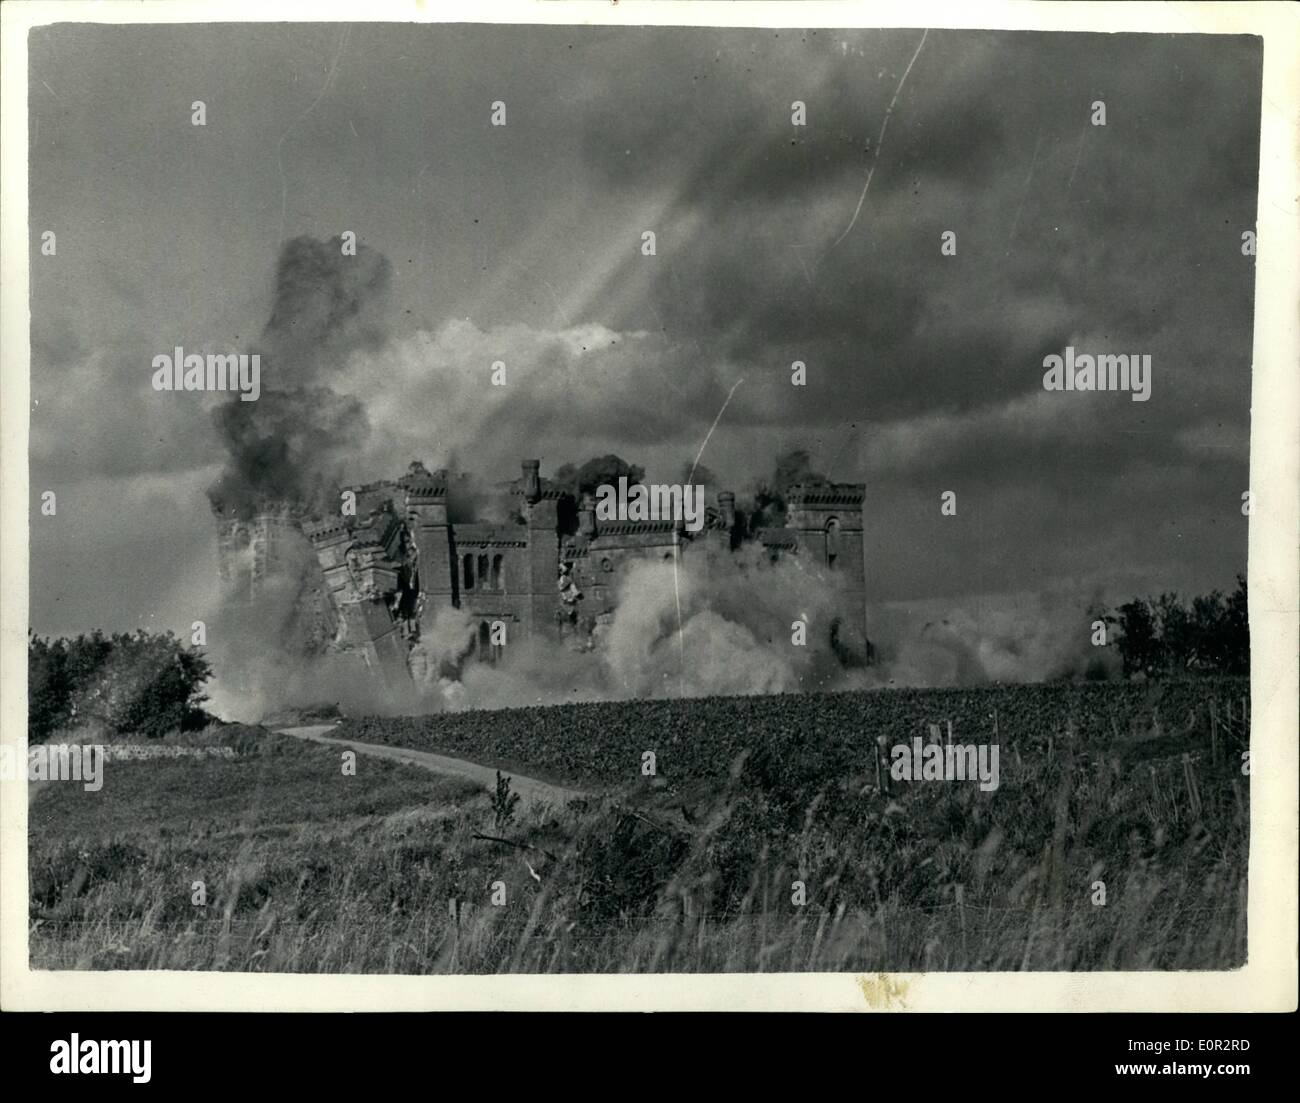 Oct. 10, 1957 - Ancient castle goes up in smoke. Blown up by 500 LBS. of explosives: The 150 year old Rossie Castle, near Montross was recently demolished by80 officer's and men of the 117 Field Engineering Regiment - with the aid of 500 lb. of plastic explosive. Within 30 seconds the castle - which was sold to a professional footballer 20 years ago for £1 - was reduced to 20,000 tons of rubble which will be used by the local council for road widening.. For weeks the Army engineers had been boring holes in the 3ft. 6in - Stock Image